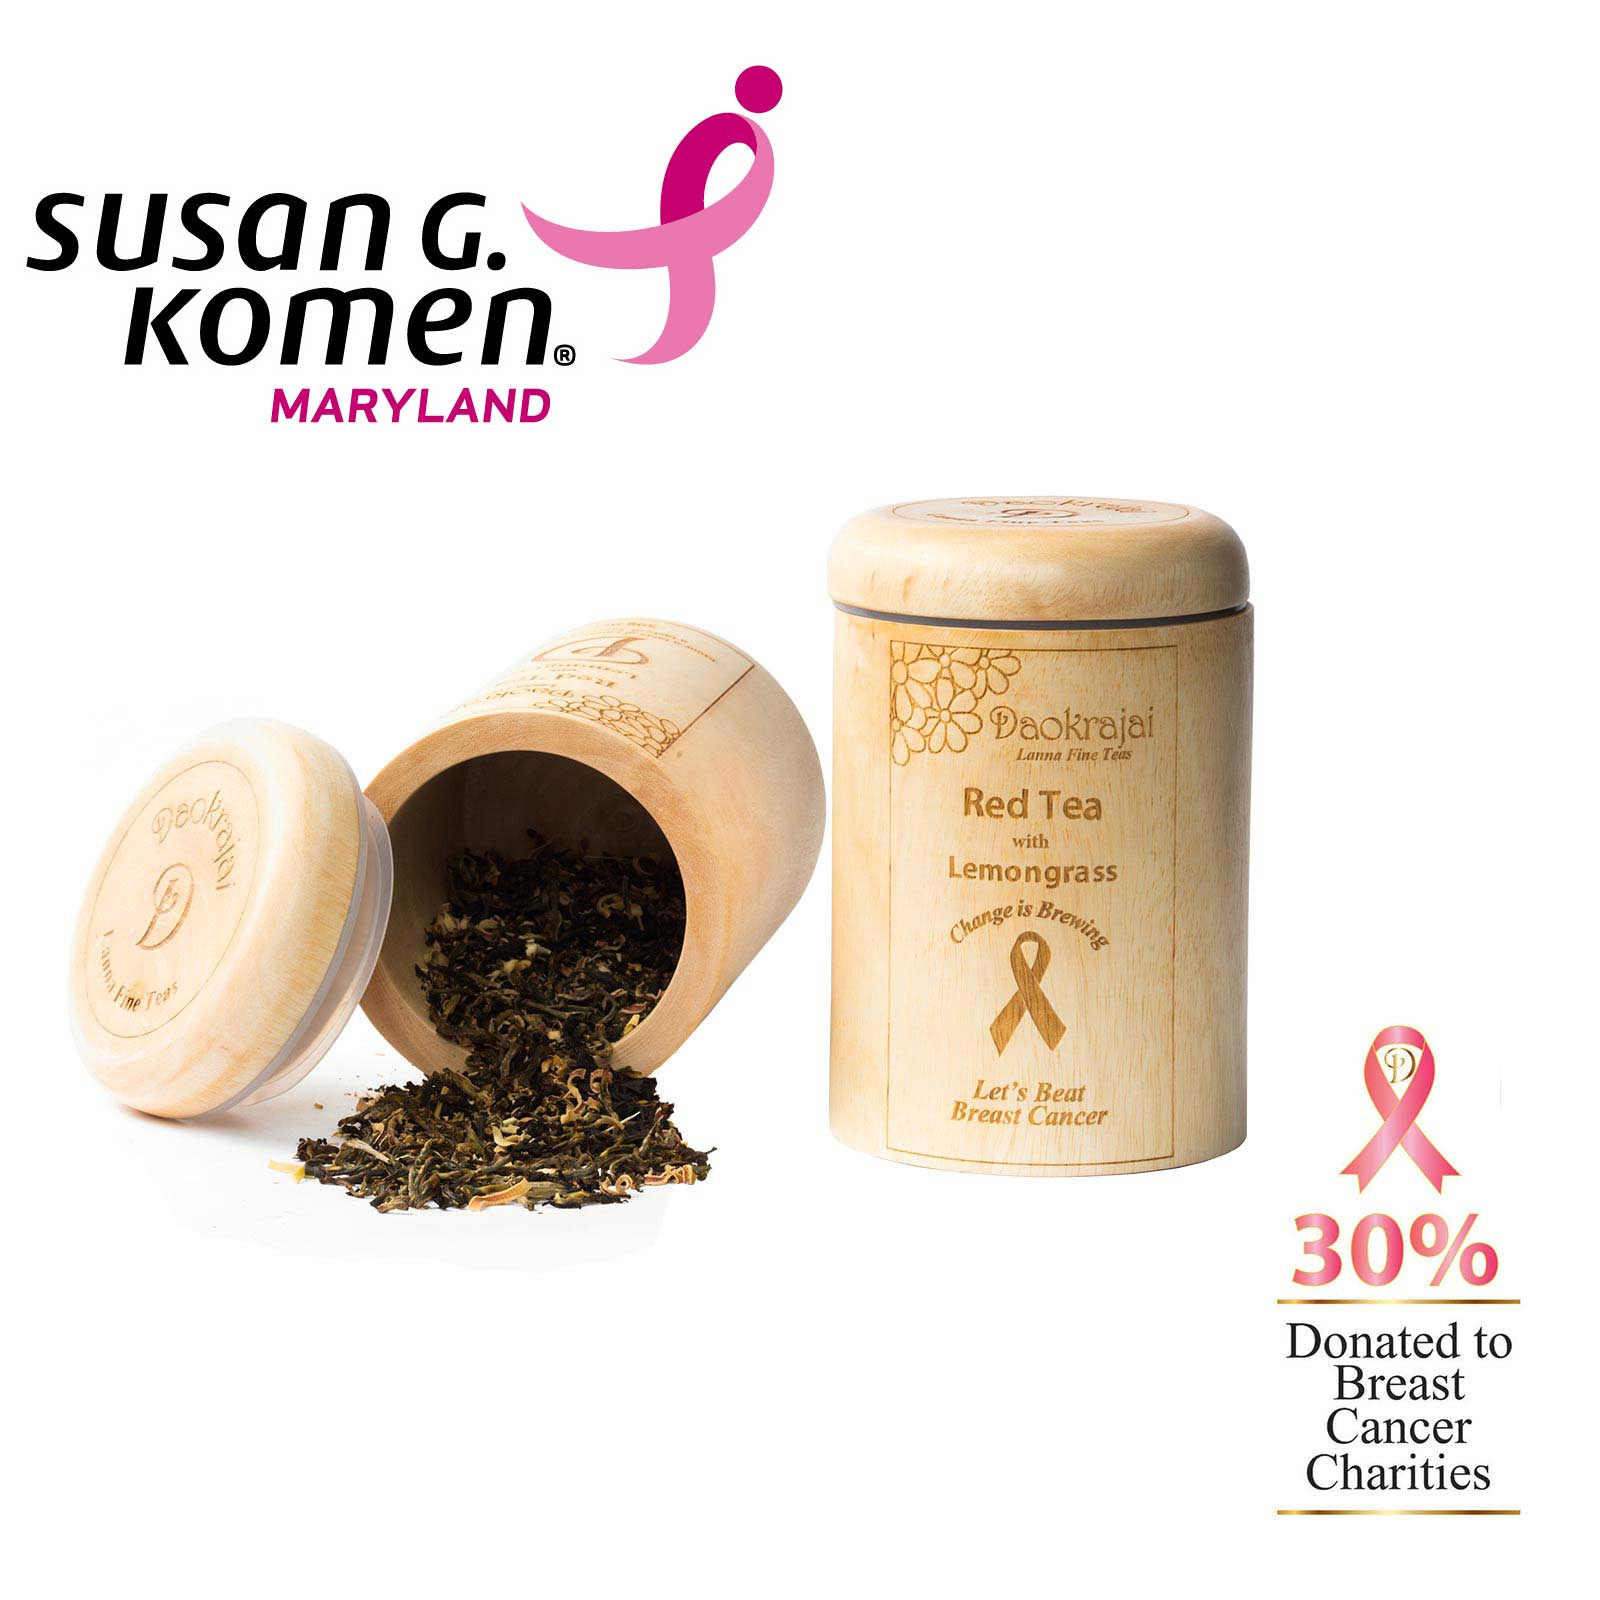 Red Tea with Lemmongrass - supporting Susan G. Komen Maryland breast cancer charity